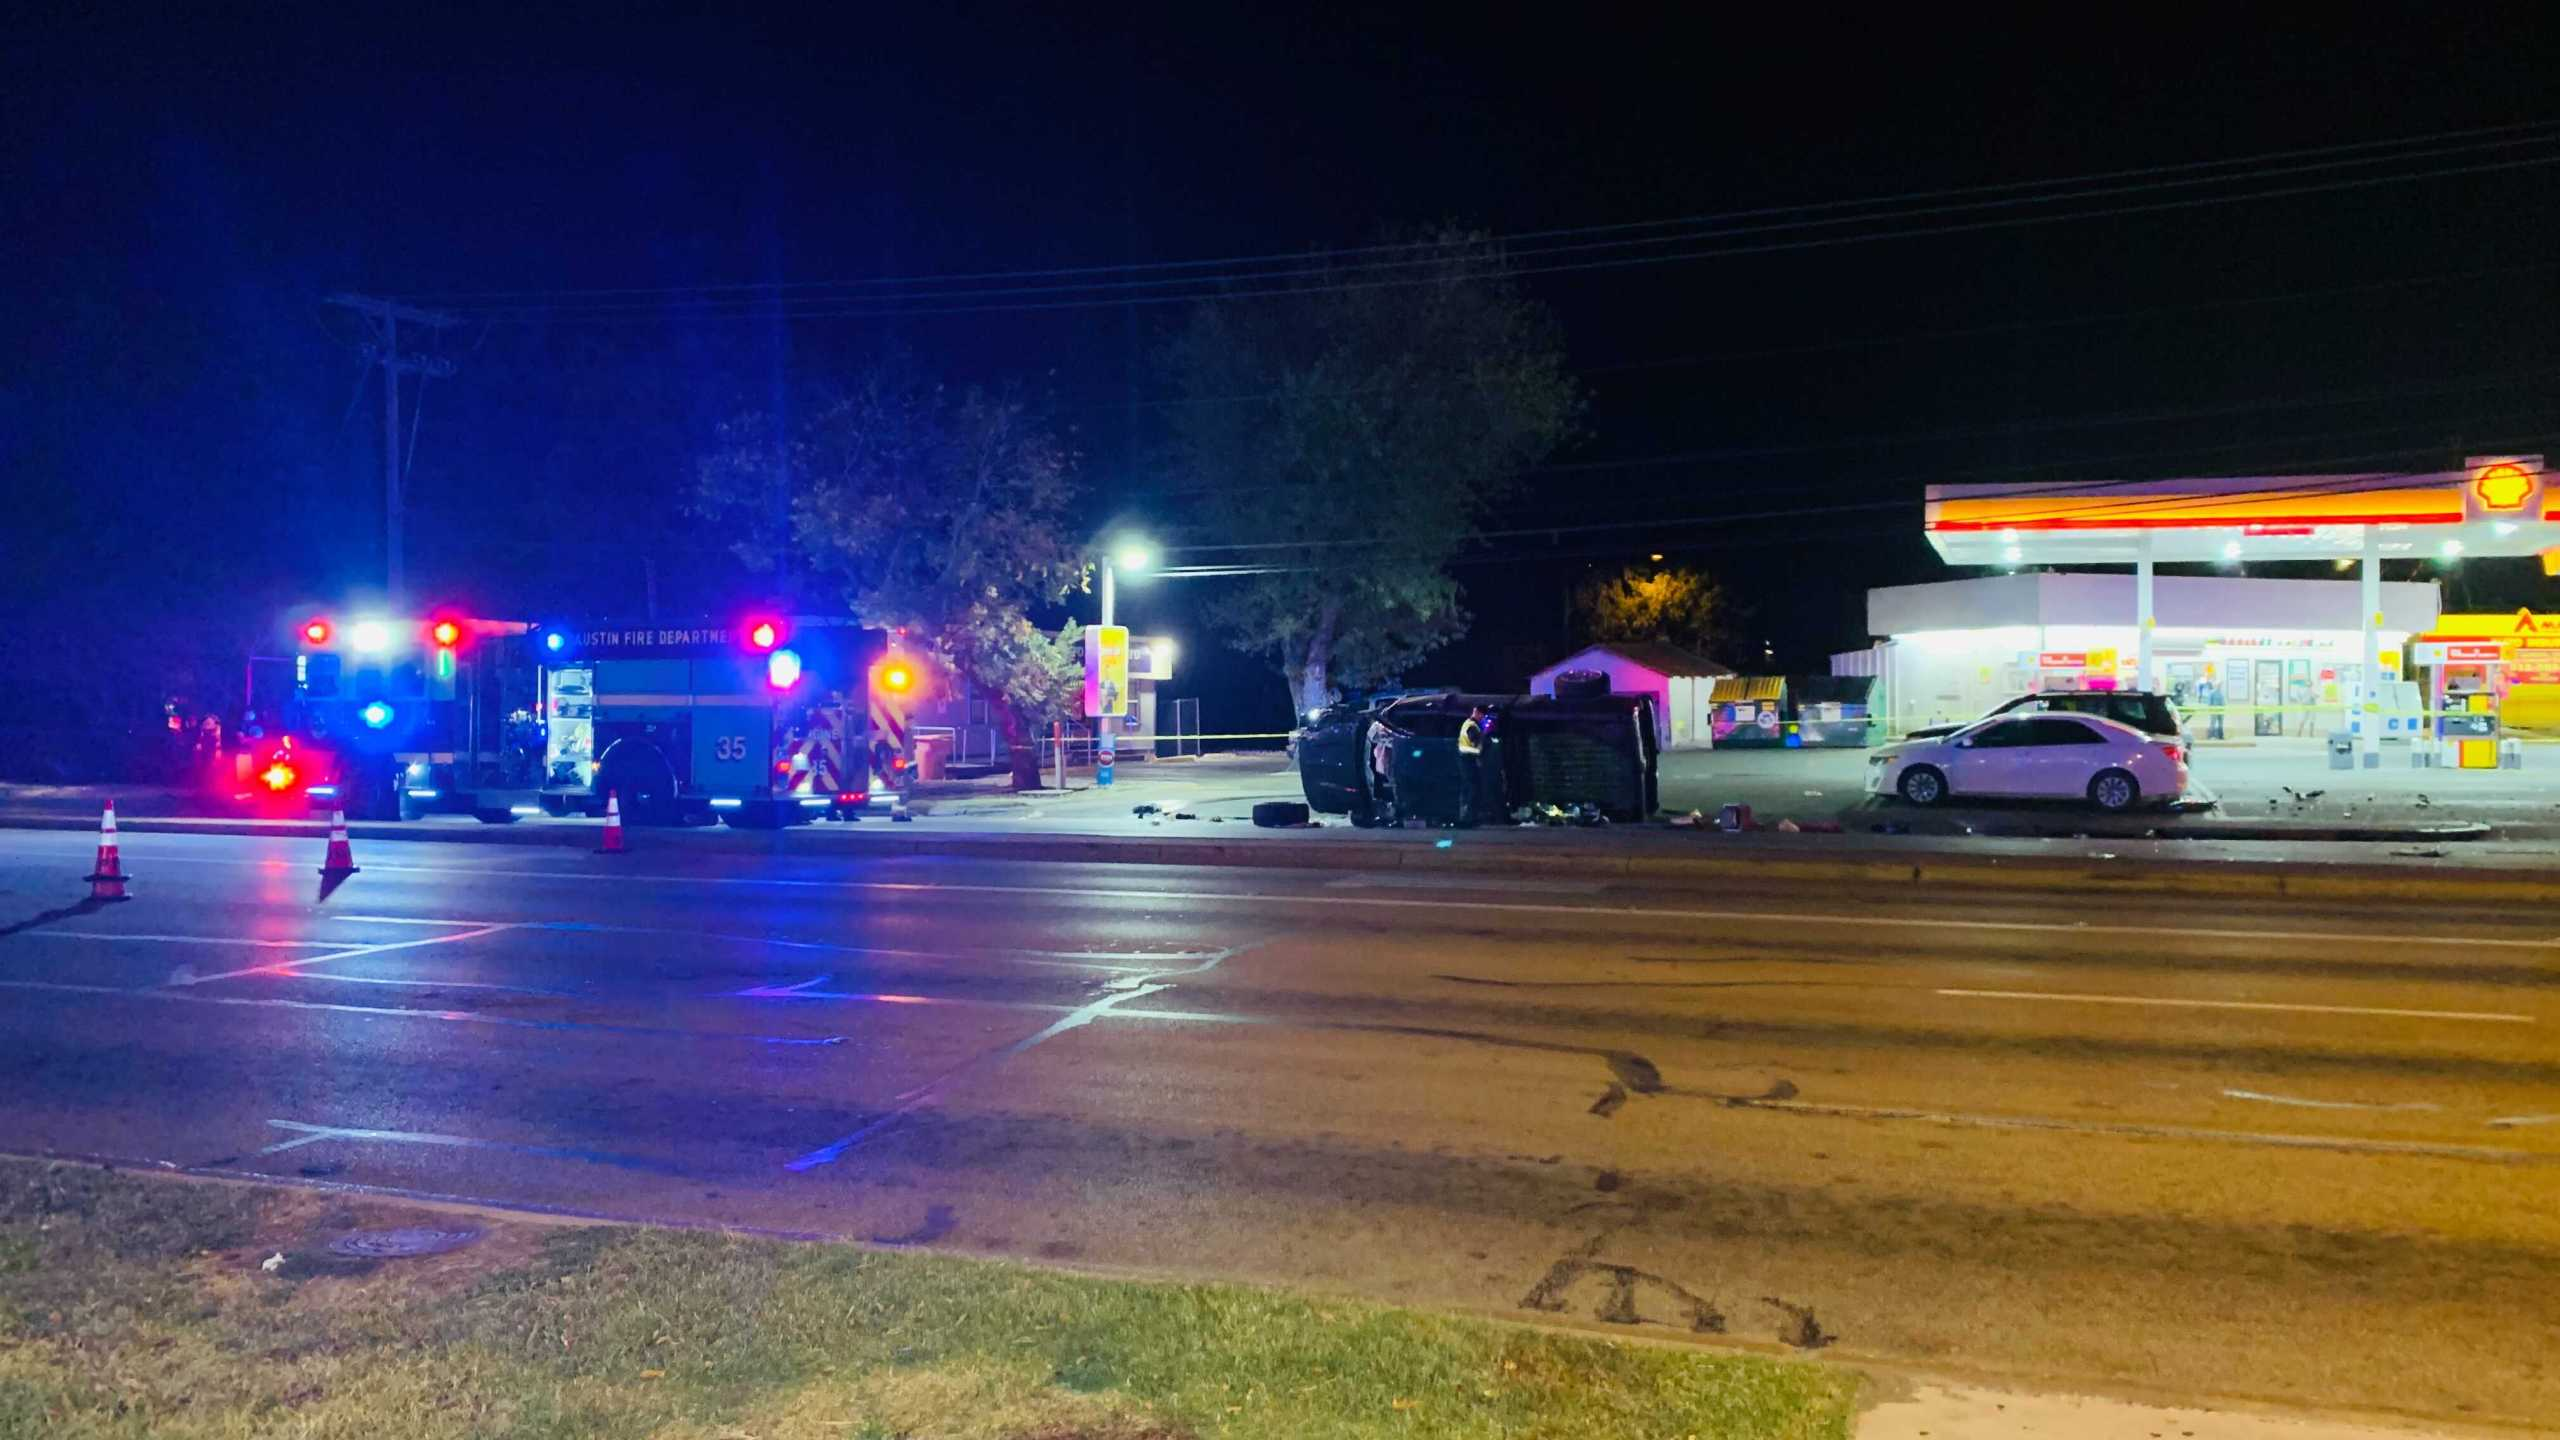 One person was taken to the hospital after a rollover accident at East Riverside Drive and Montopolis Drive Nov. 25 (KXAN/Andy Way)